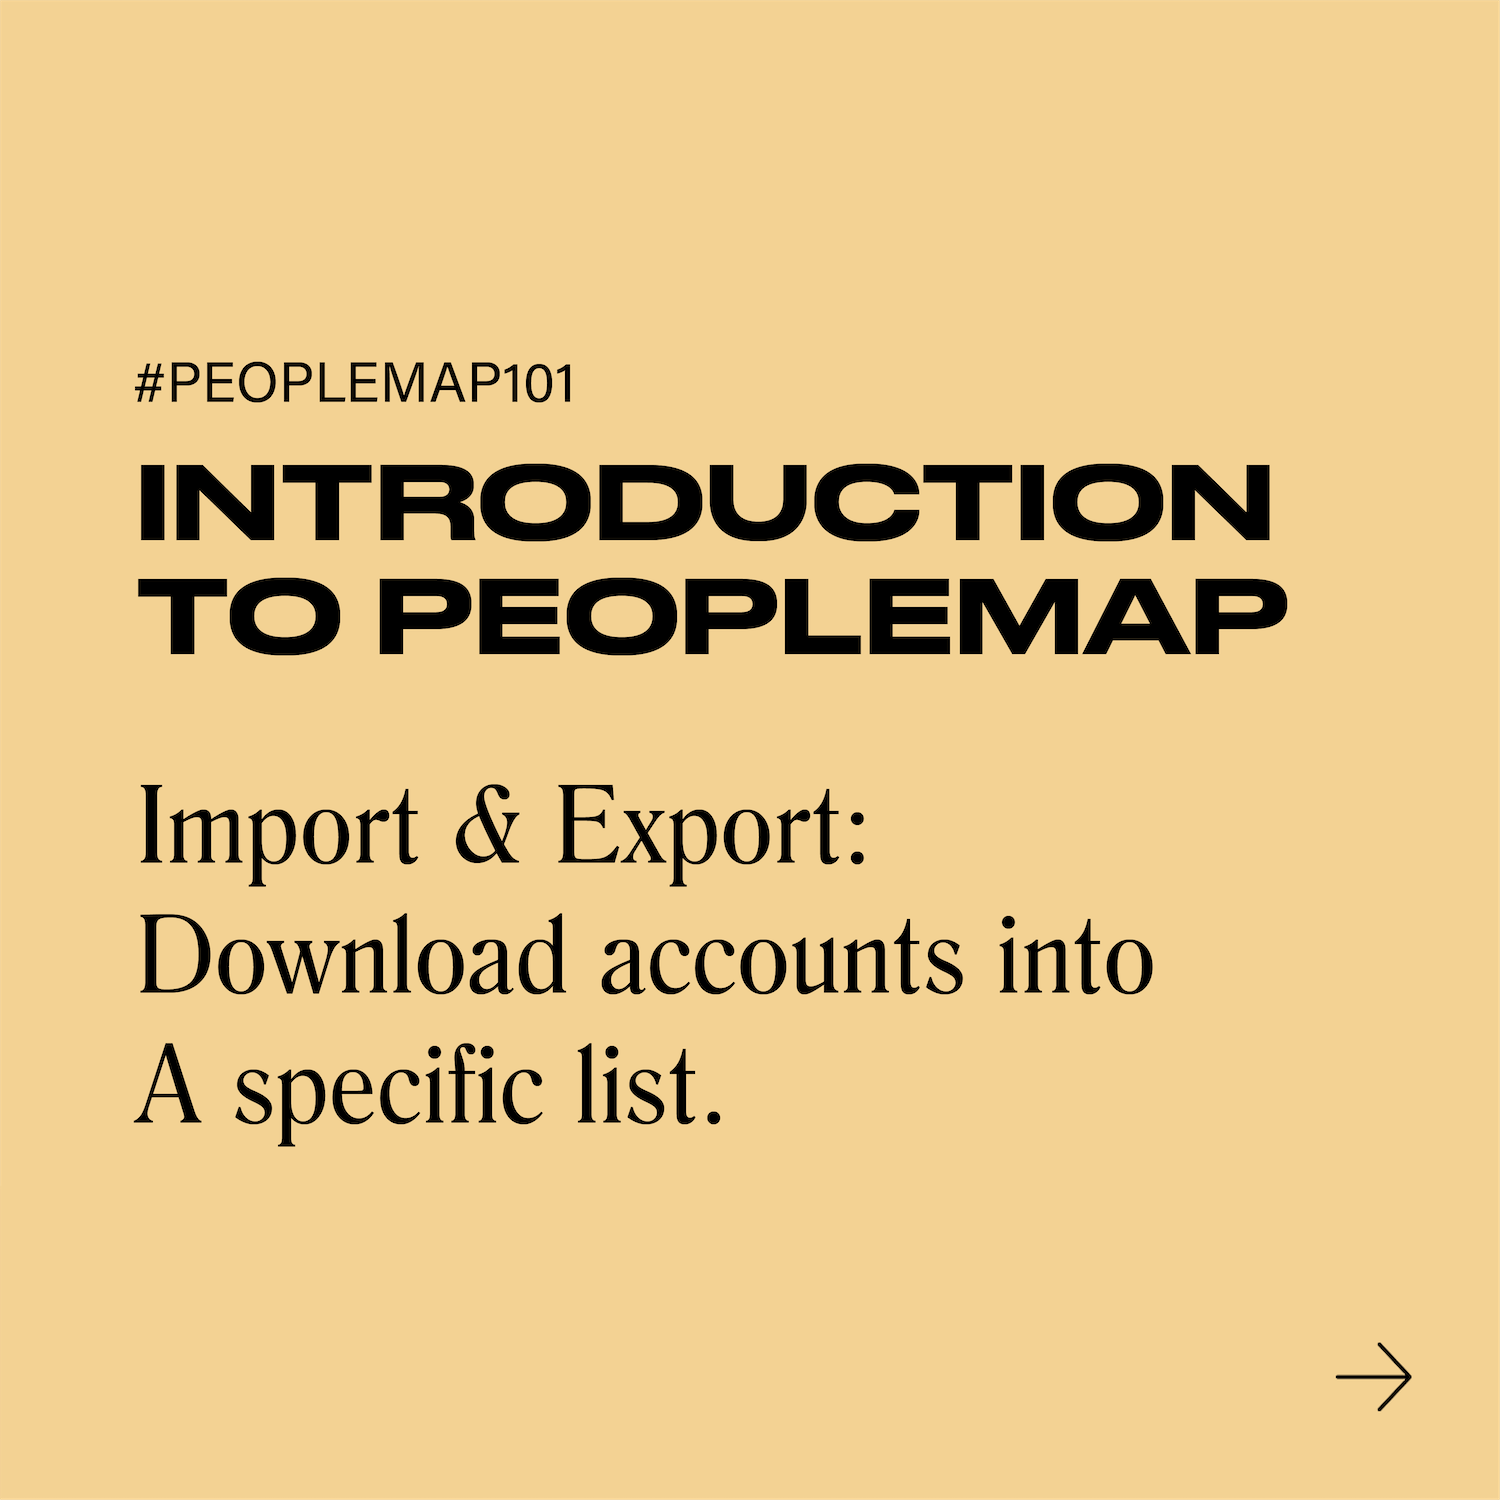 #PeopleMap101 Promotional Videos